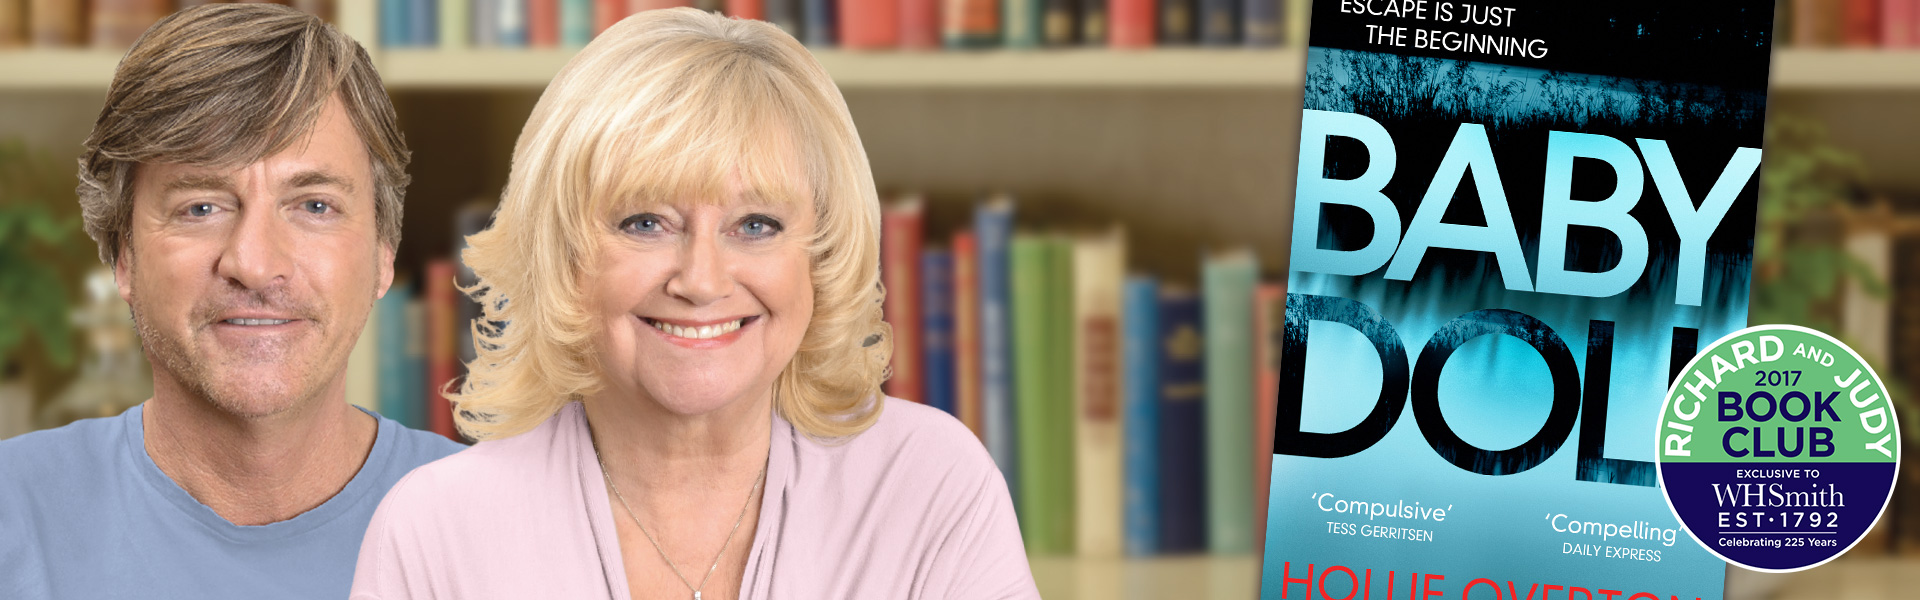 Richard and Judy Review: Baby Doll by Hollie Overton